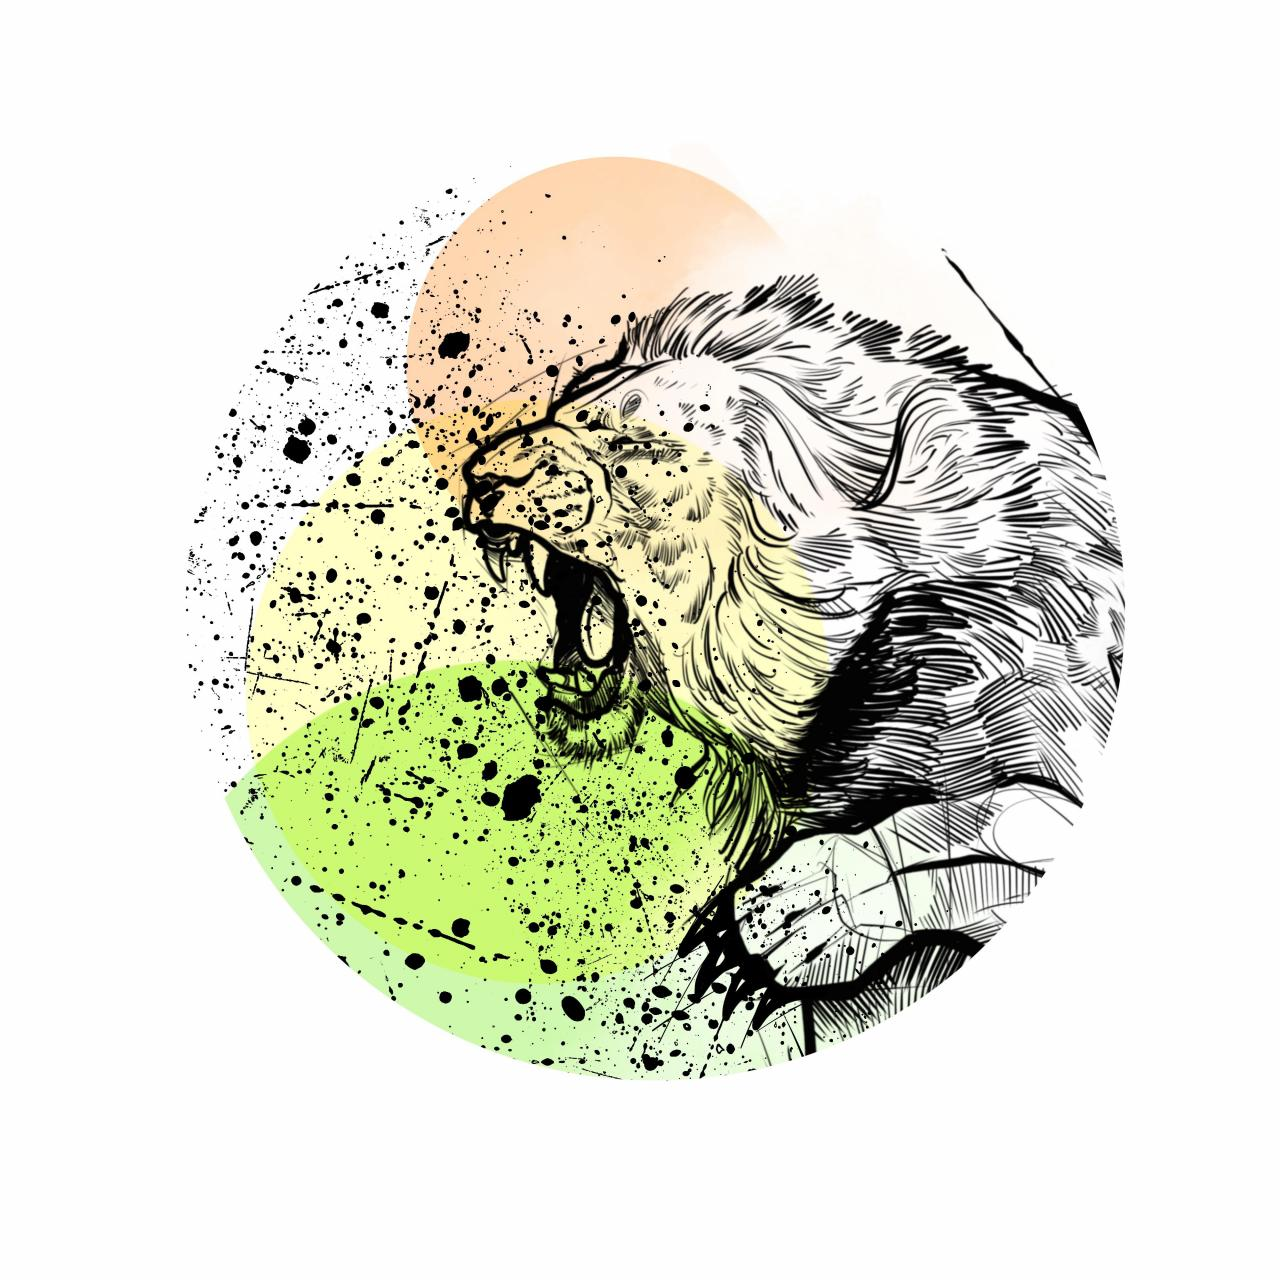 custom lion tattoo design - I'm open for commissions - PM for custom designs